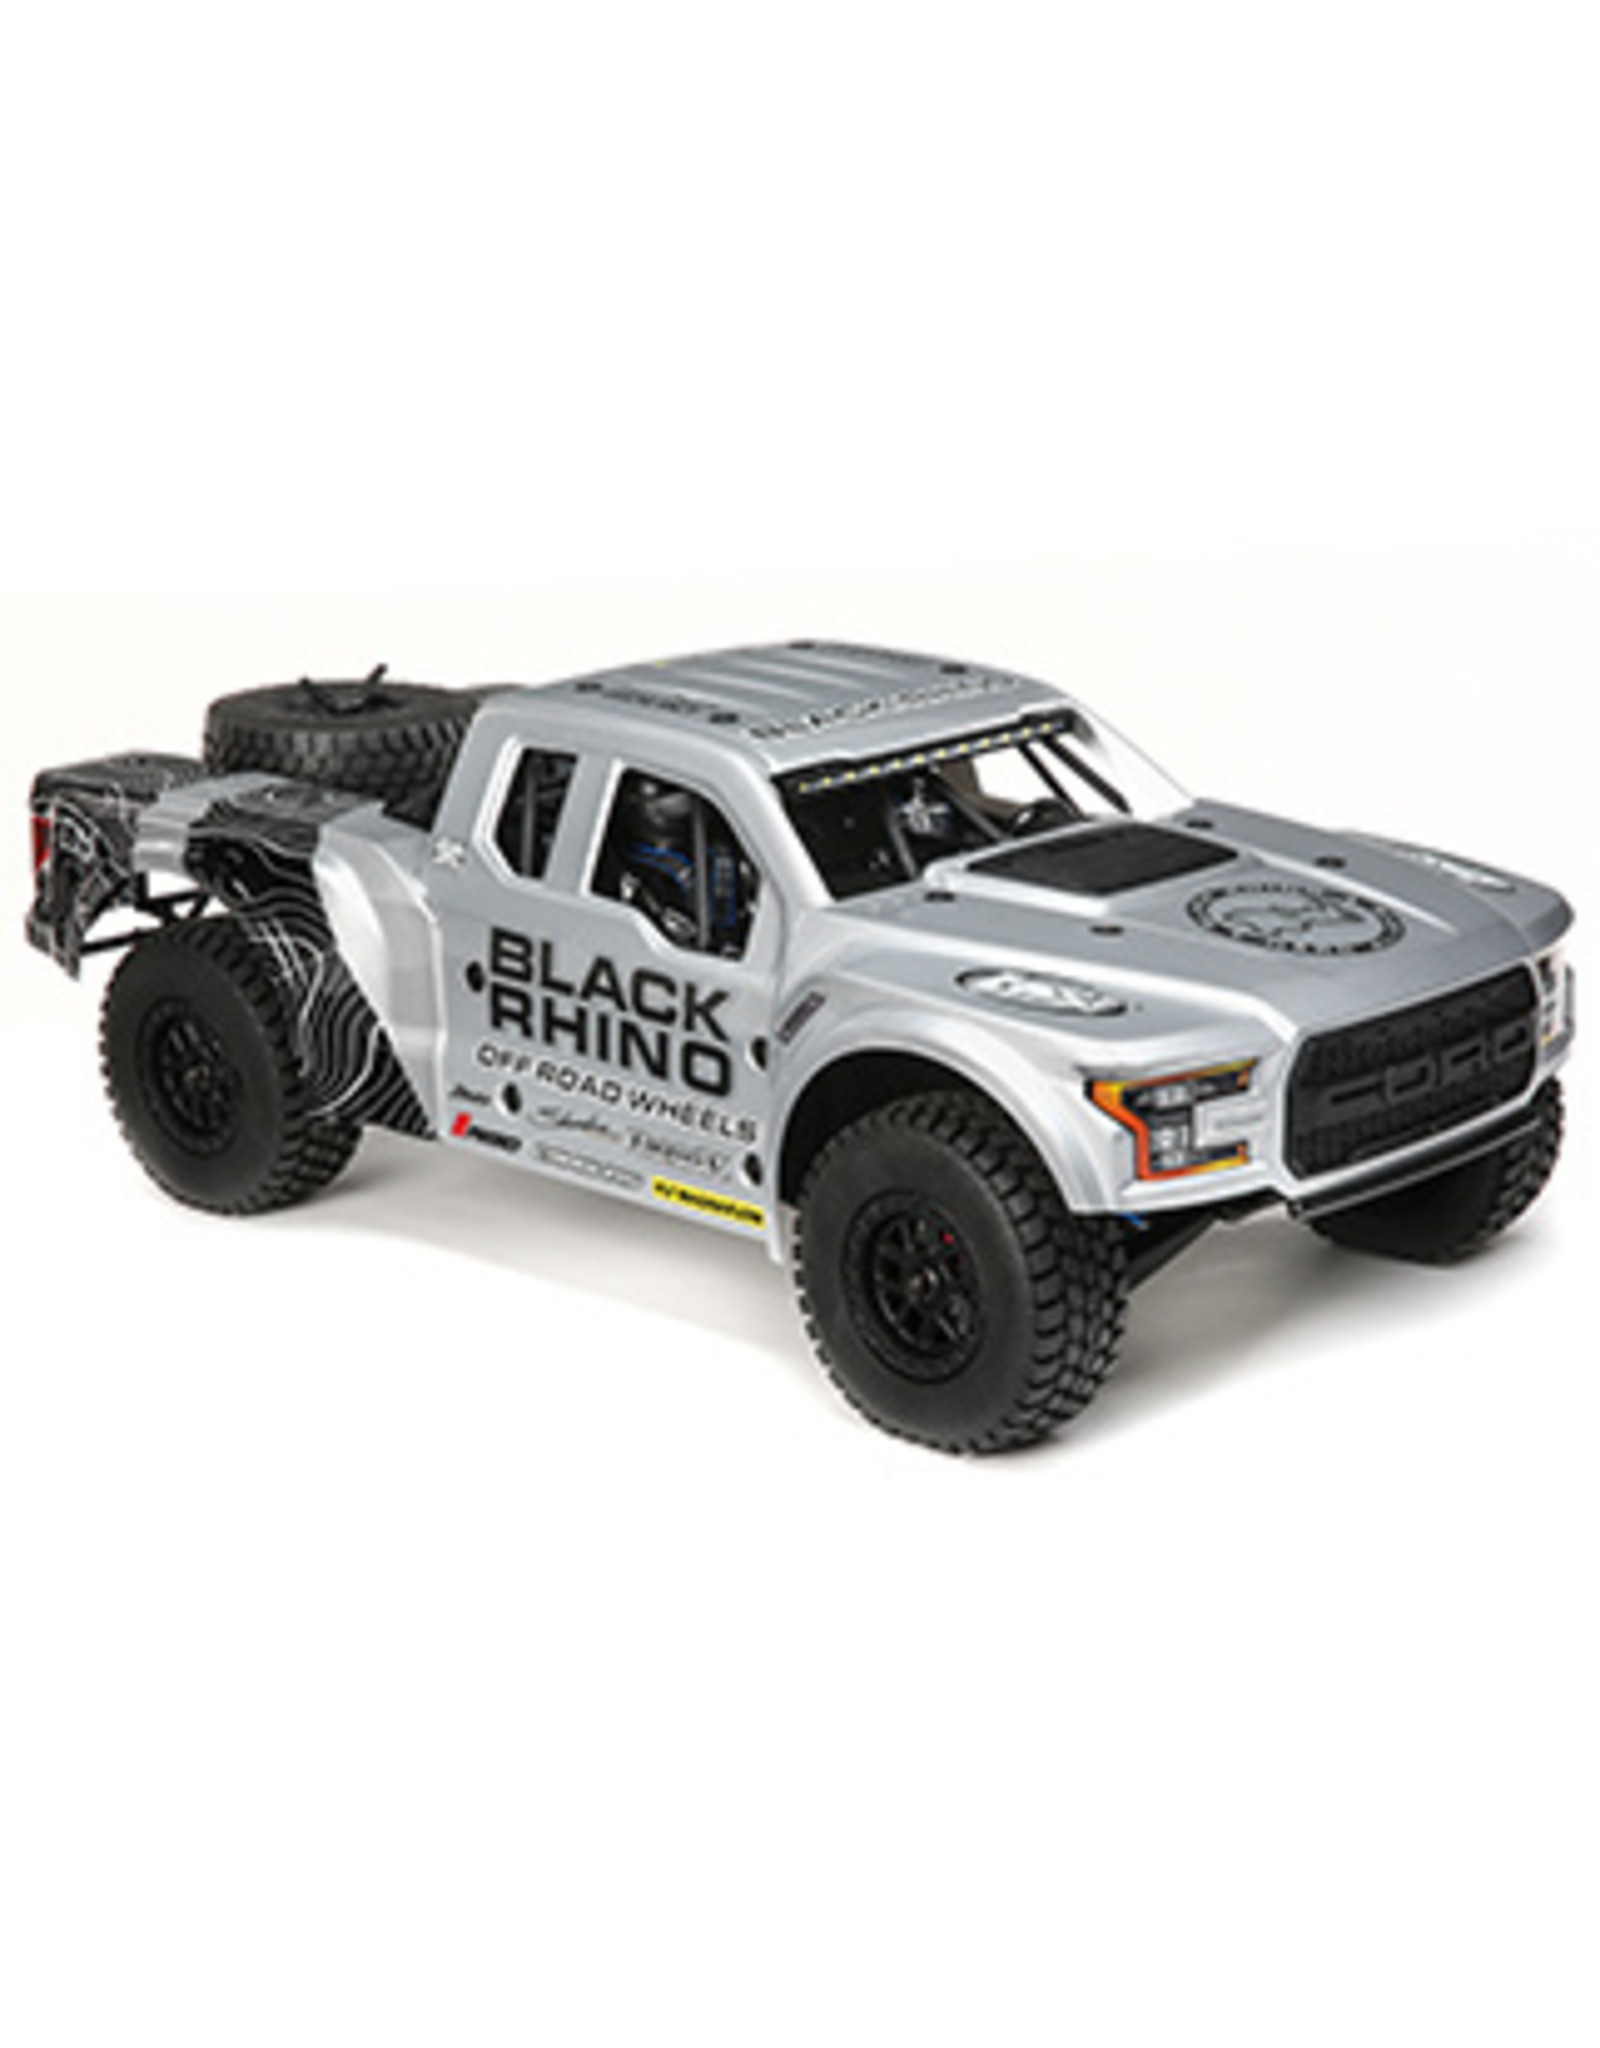 Losi 1/10 Ford Raptor Baja Rey 4WD Black Rhino Brushless RTR, King Shocks